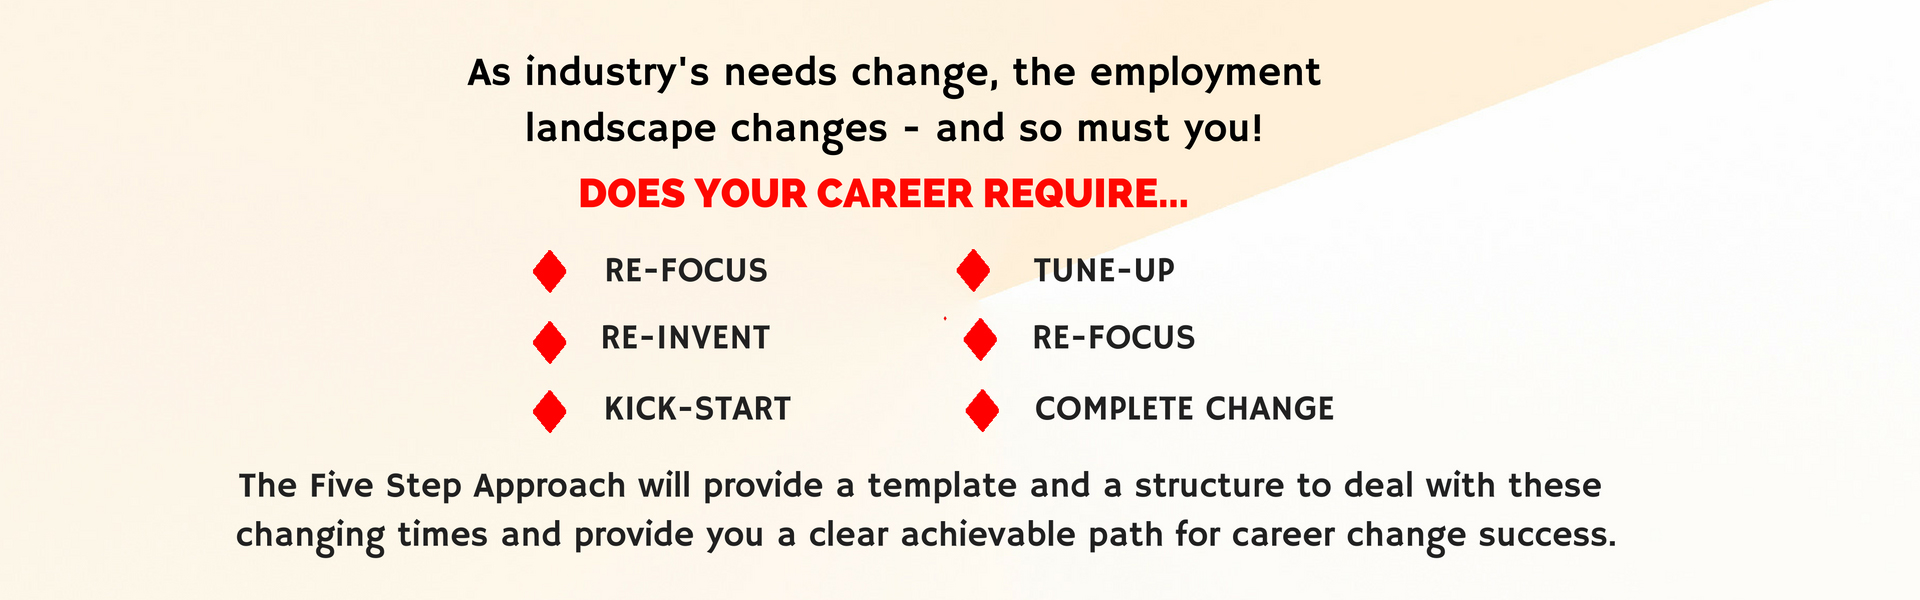 DOES-YOUR-CAREER-REQUIRE...-(3)